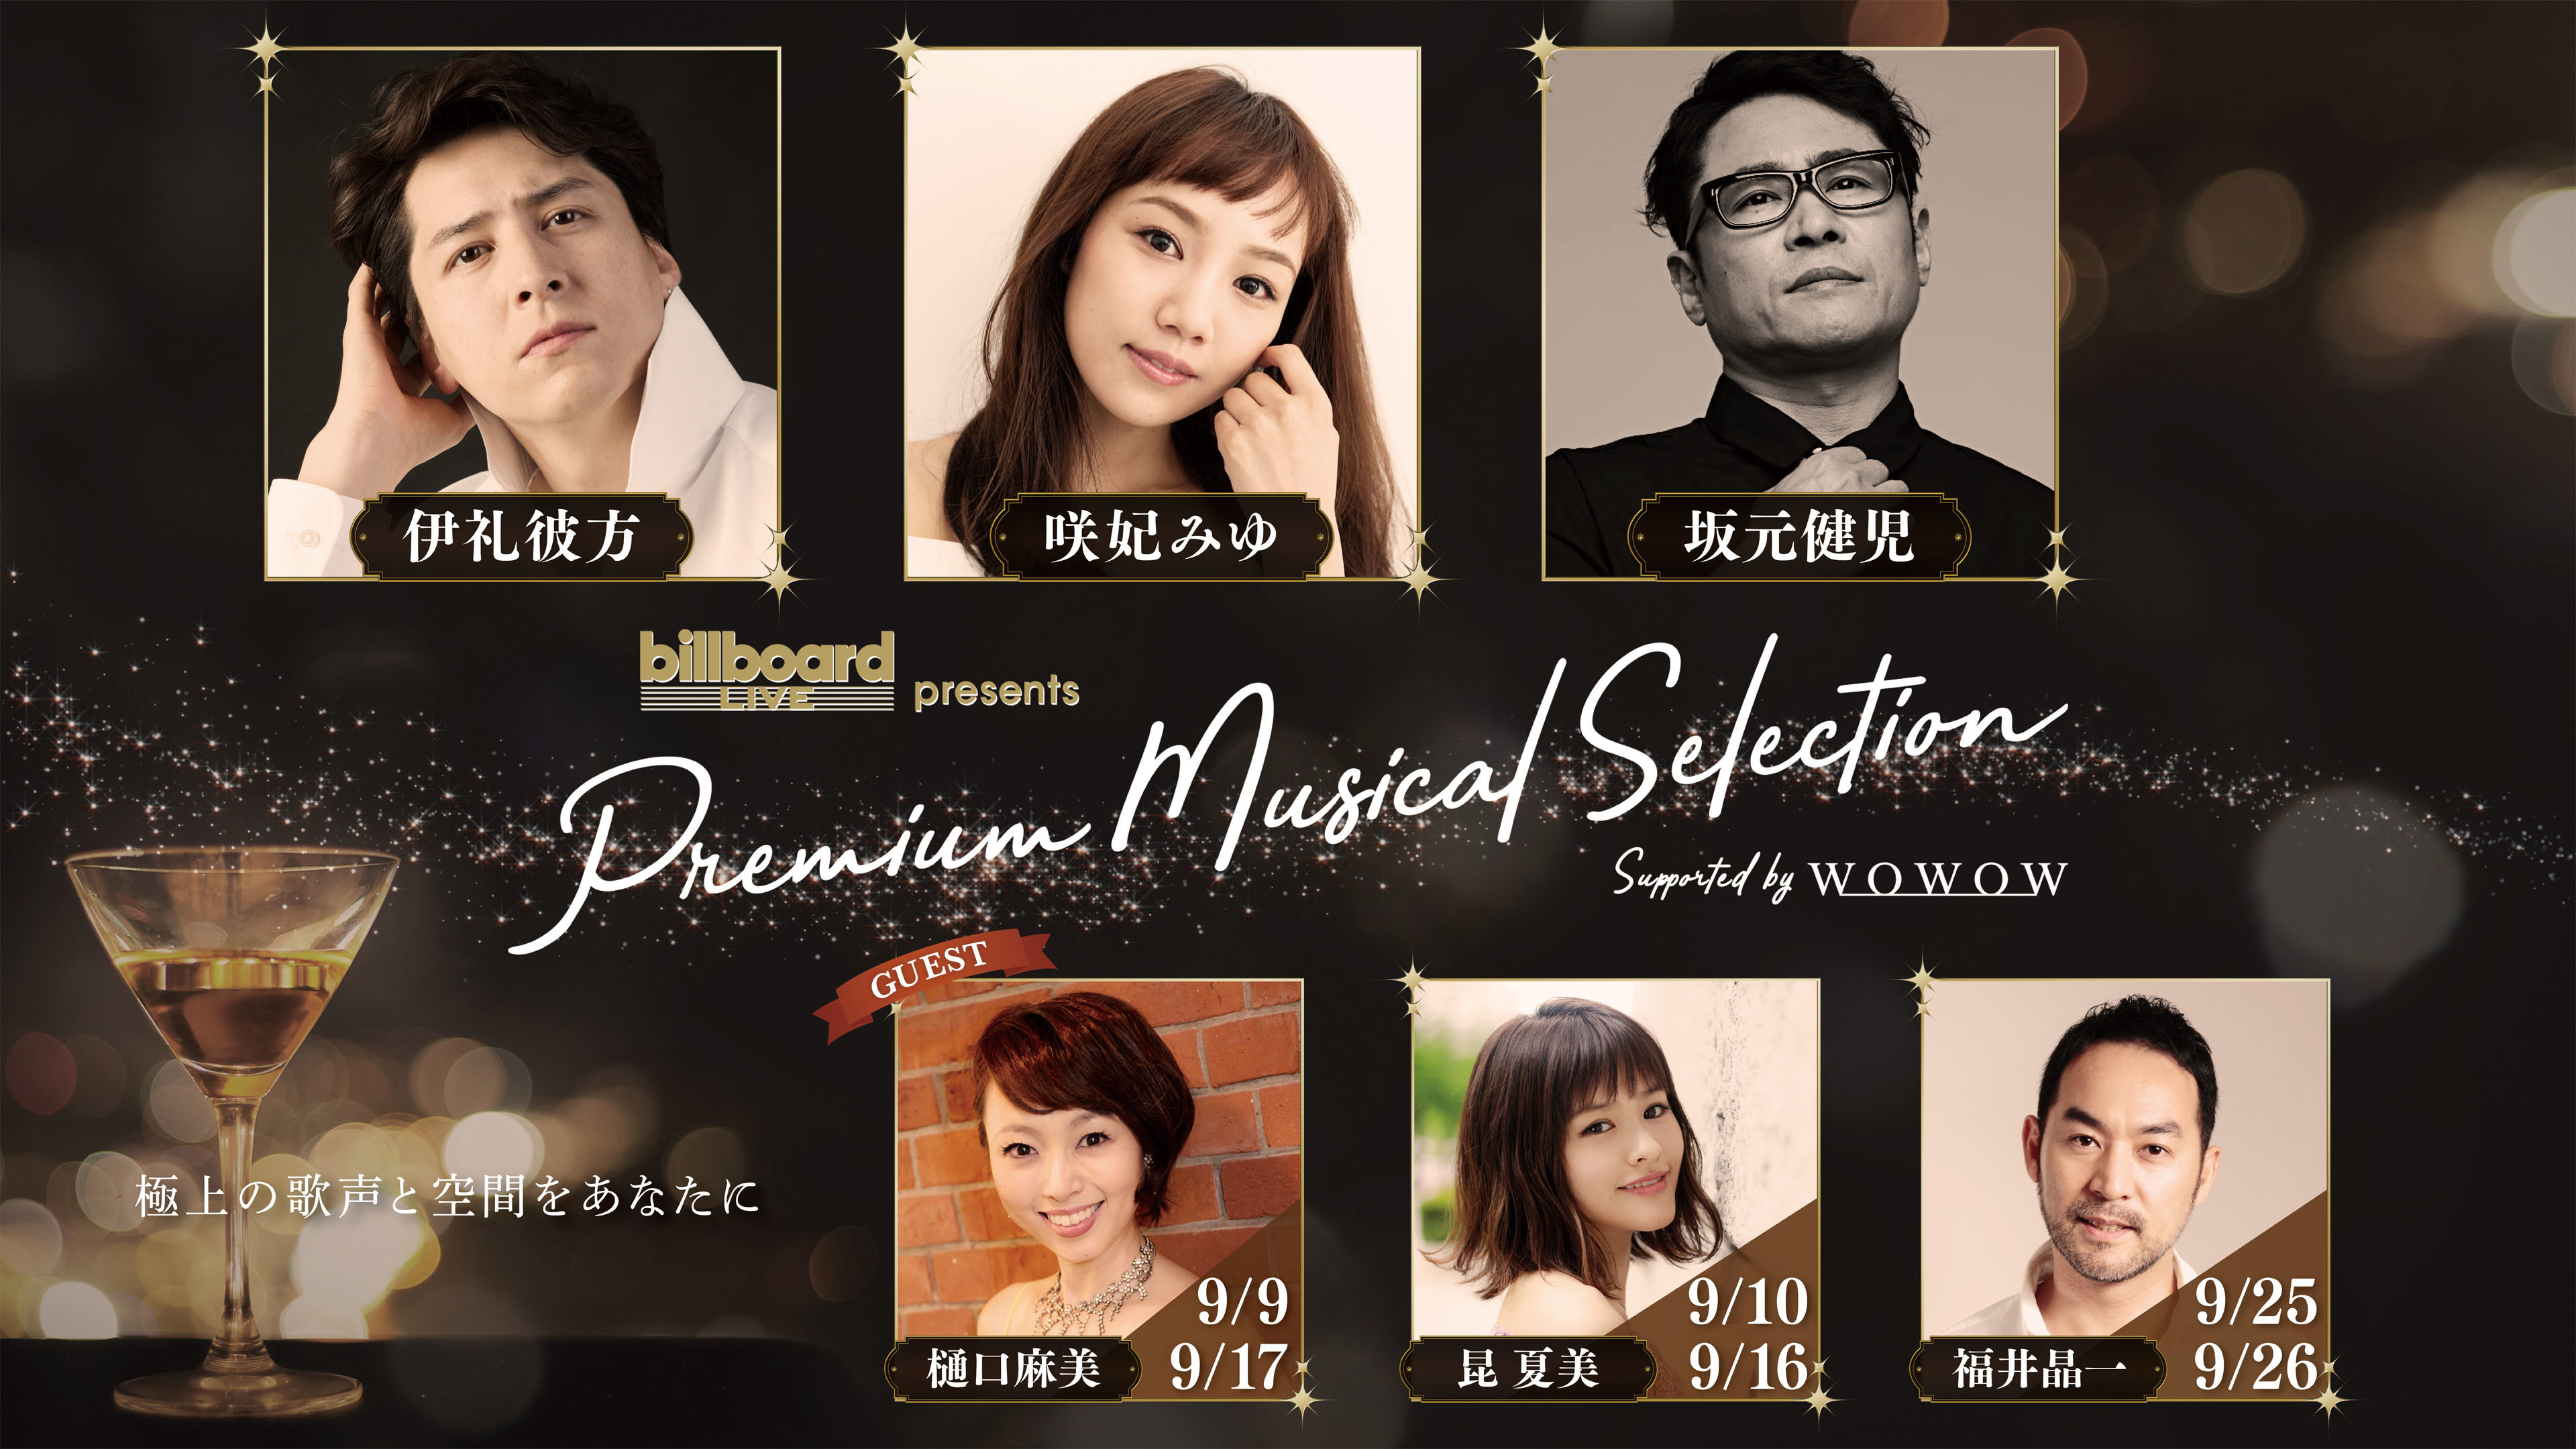 「Billboard Live presents Premium Musical Selection」 Supported by WOWOW